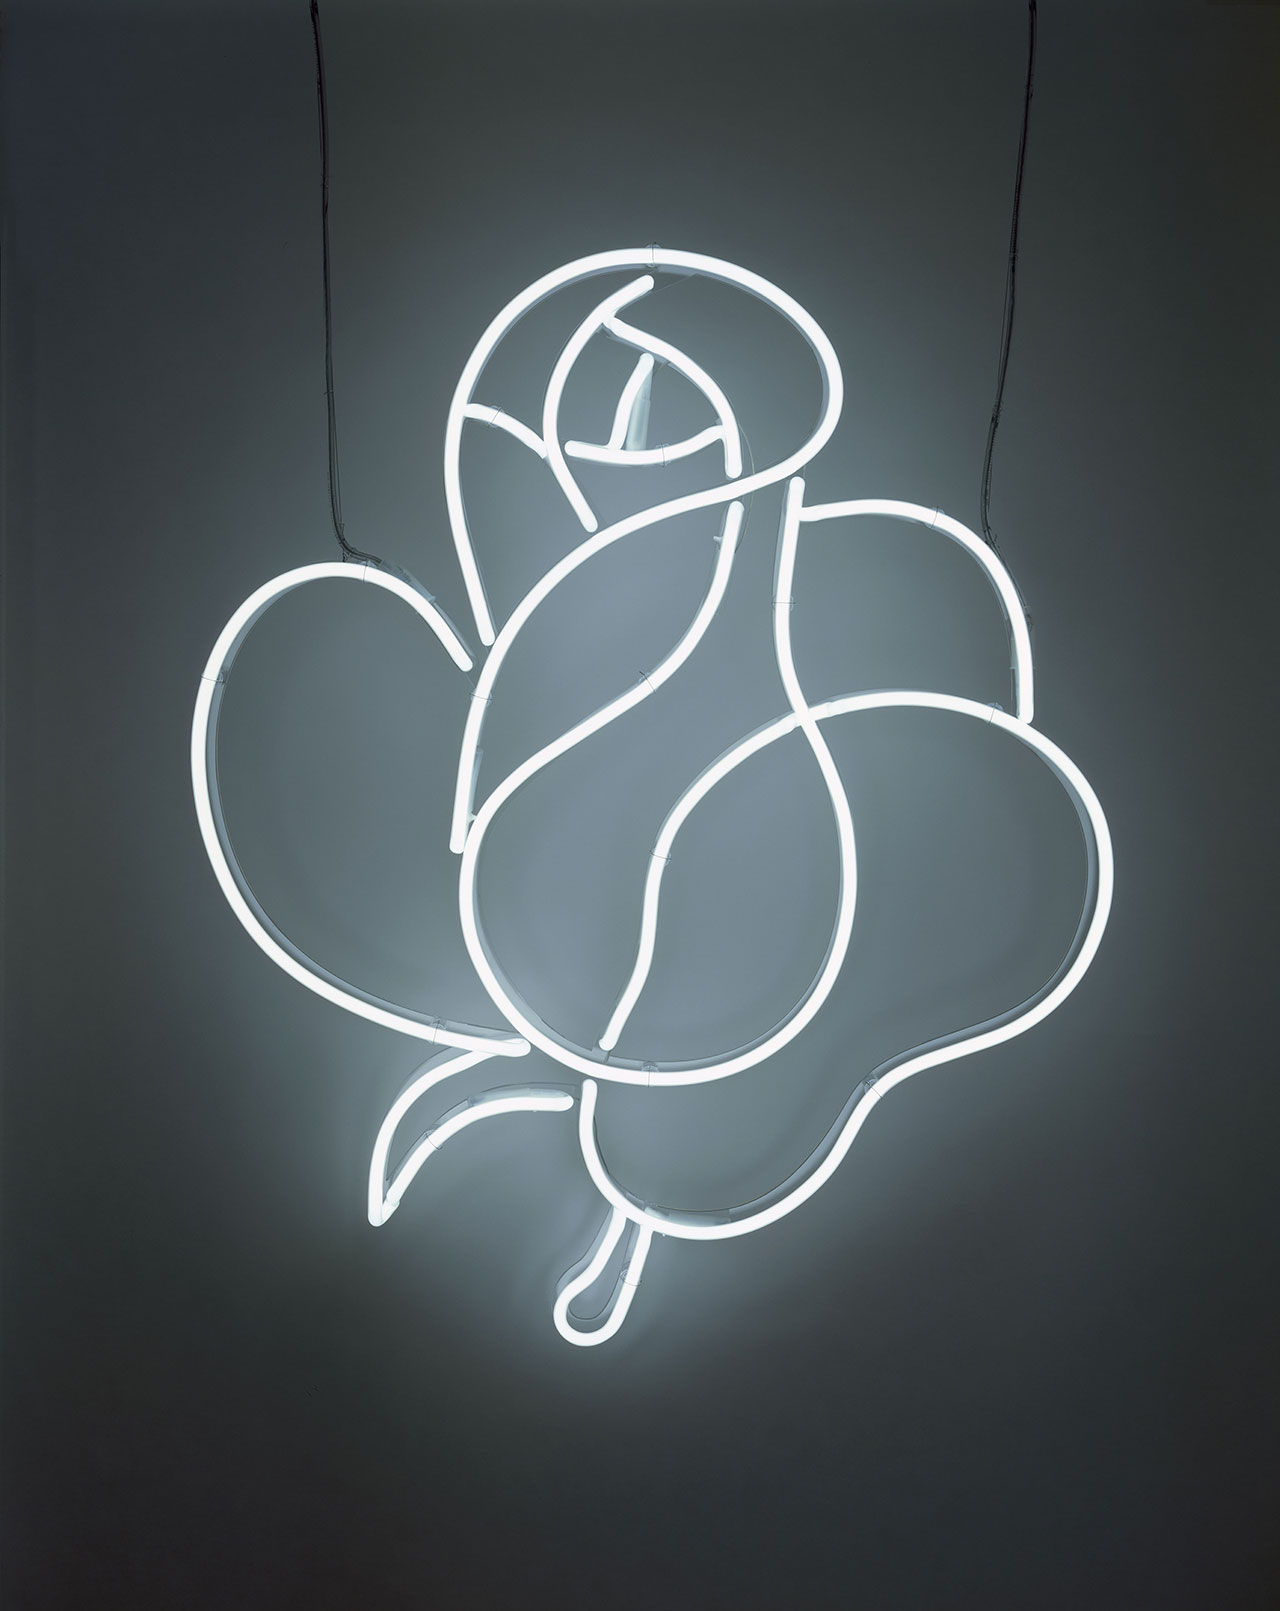 Cerith Wyn Evans, Untitled – Takashimaya Rose (White), 2007. © Cerith Wyn Evans. Courtesy White Cube. Photo: Todd-White Art Photography.